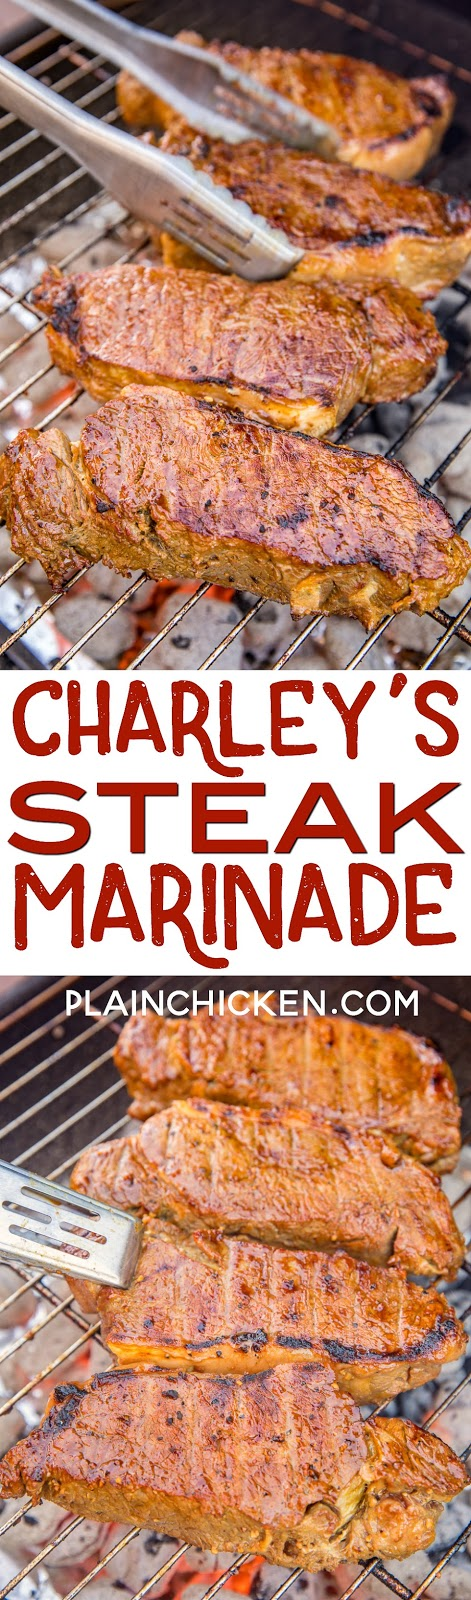 Charley's Steak Marinade - seriously delicious! Only 6 simple ingredients - yellow mustard, garlic, soy sauce, brown sugar, salt and pepper. The BEST steak marinade EVER! SO simple and packed full of amazing flavor! Give this a try ASAP! #grilling #steak #marinade